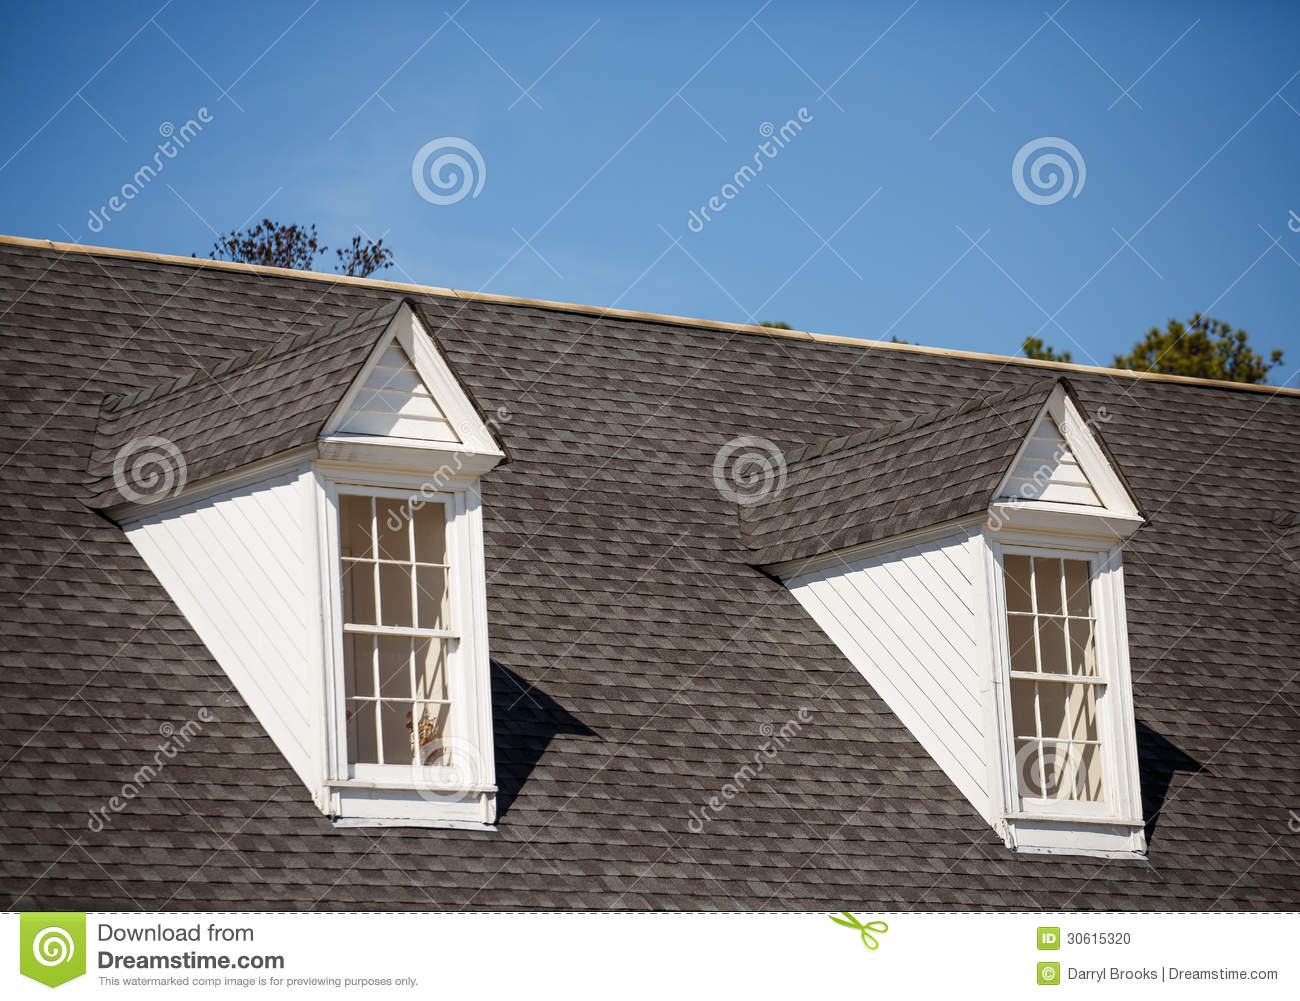 Two White Dormers On Grey Shingle Roof Stock Photo Image